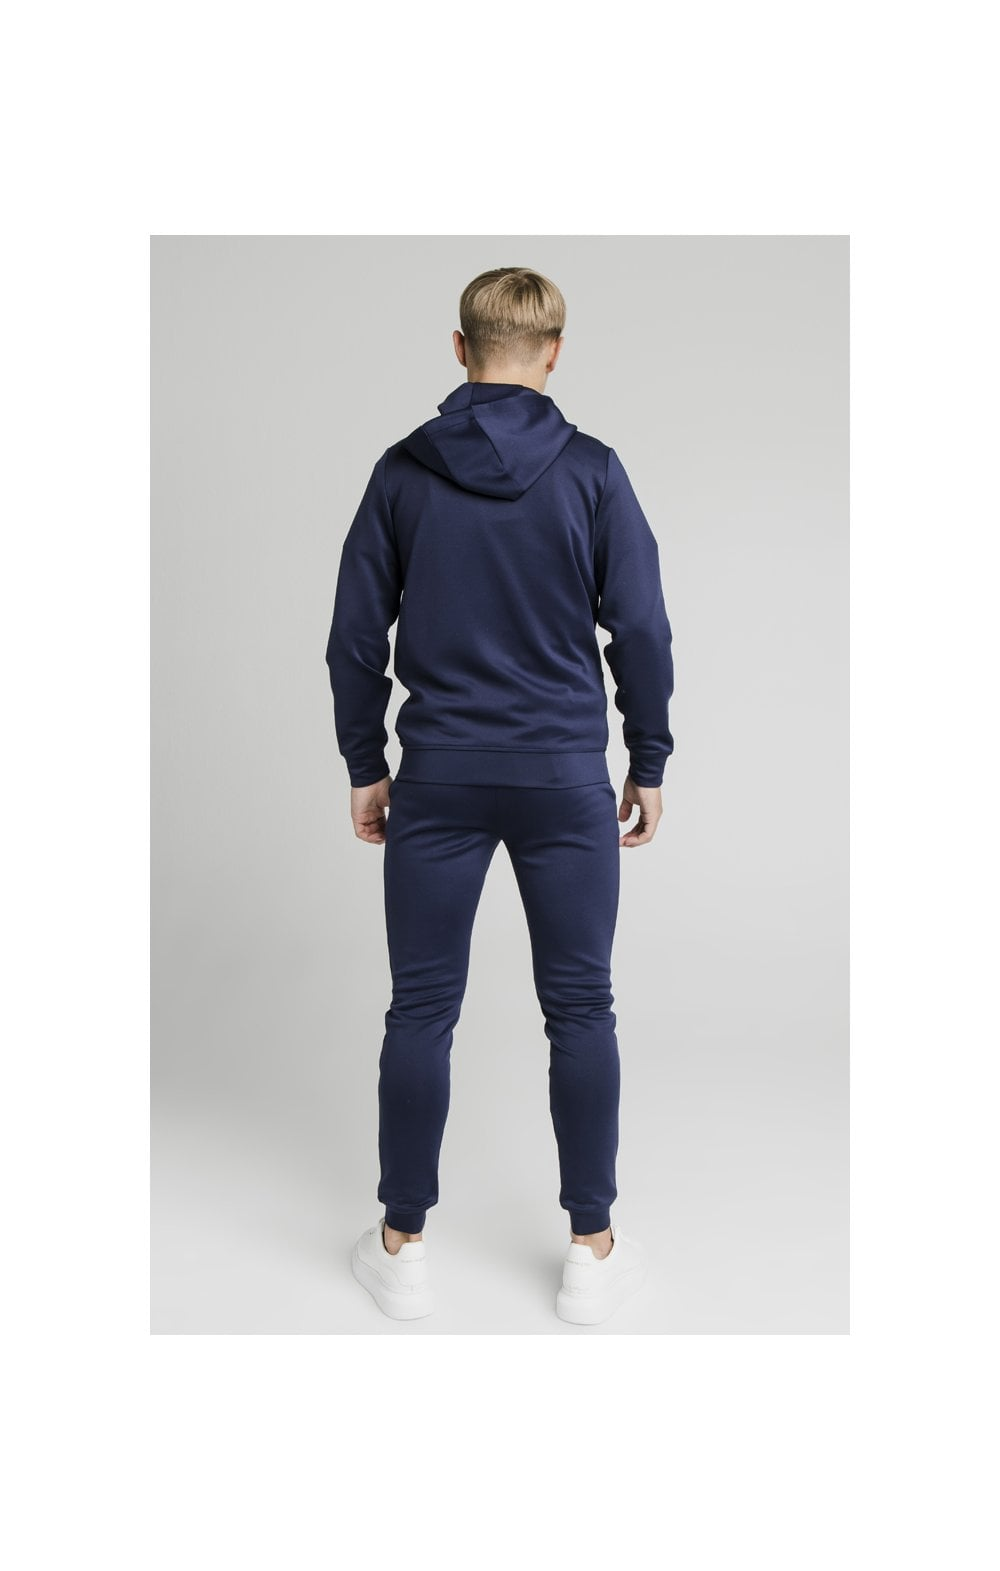 Load image into Gallery viewer, Illusive London Central Tape Zip Through Hoodie - Navy (7)